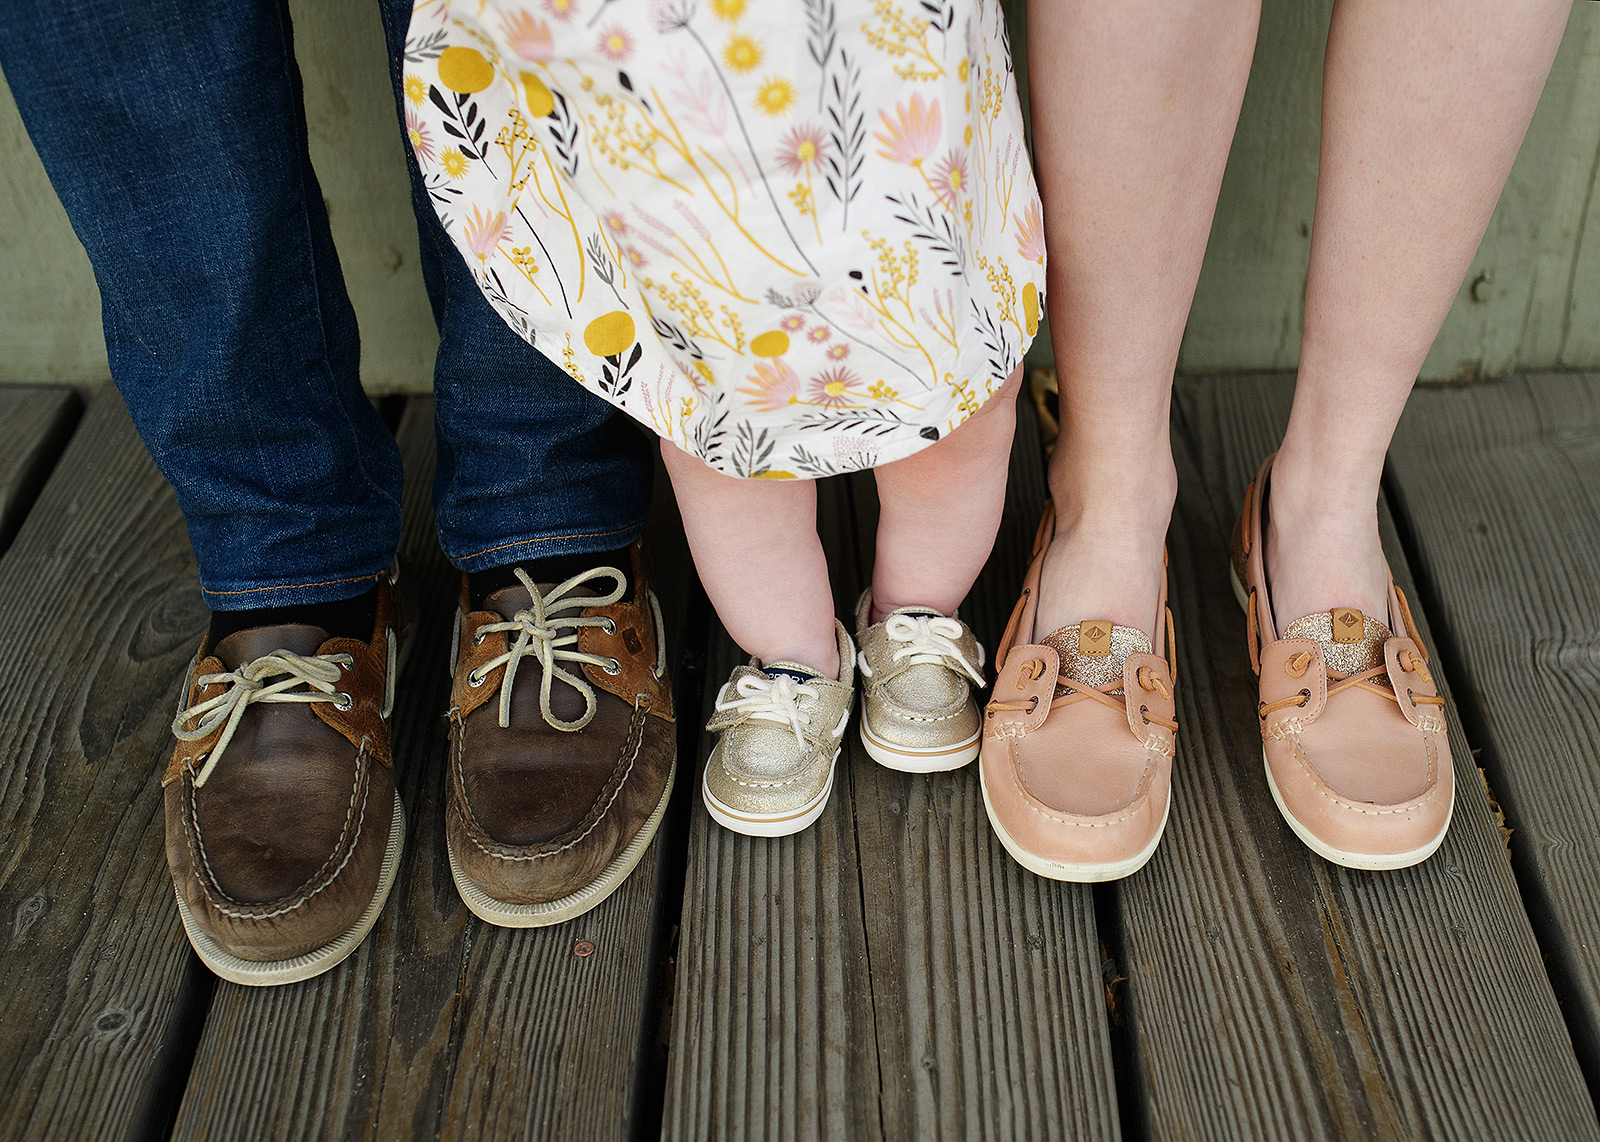 Family shoe photo wearing Sperry Topsiders boat shoes